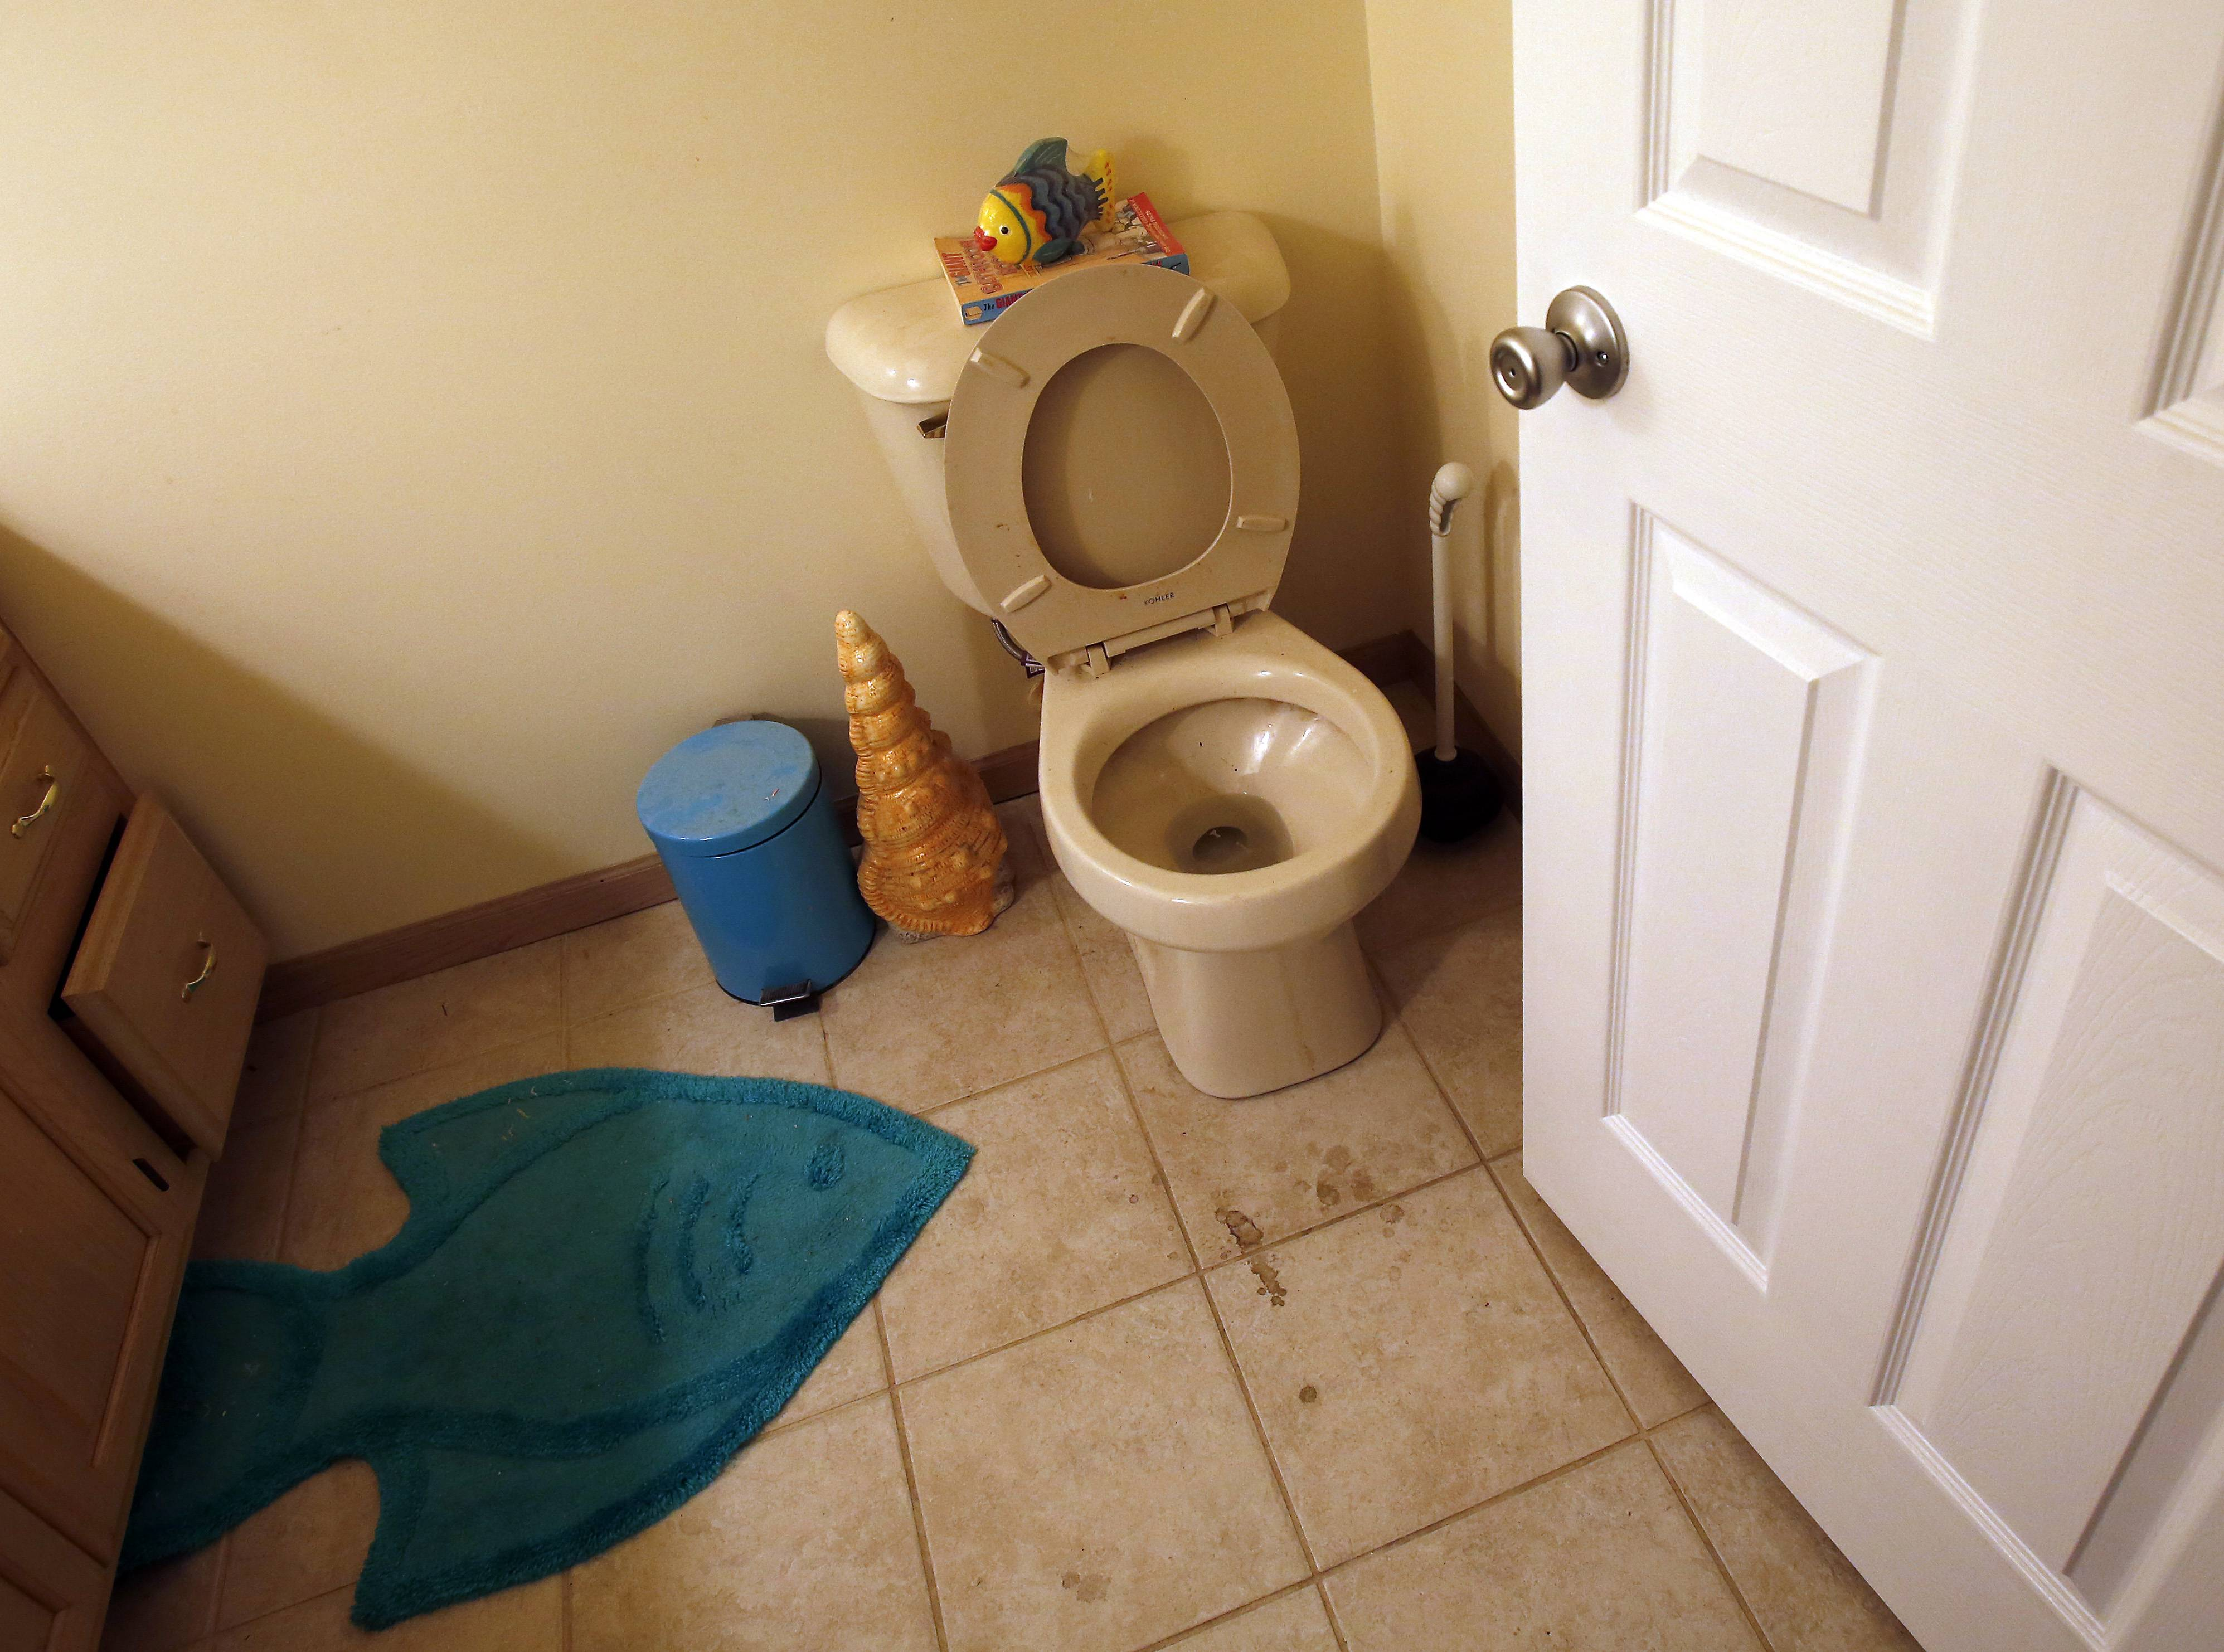 Lagenbach's basement toilet was the source of the sewer water came up in January, she says.